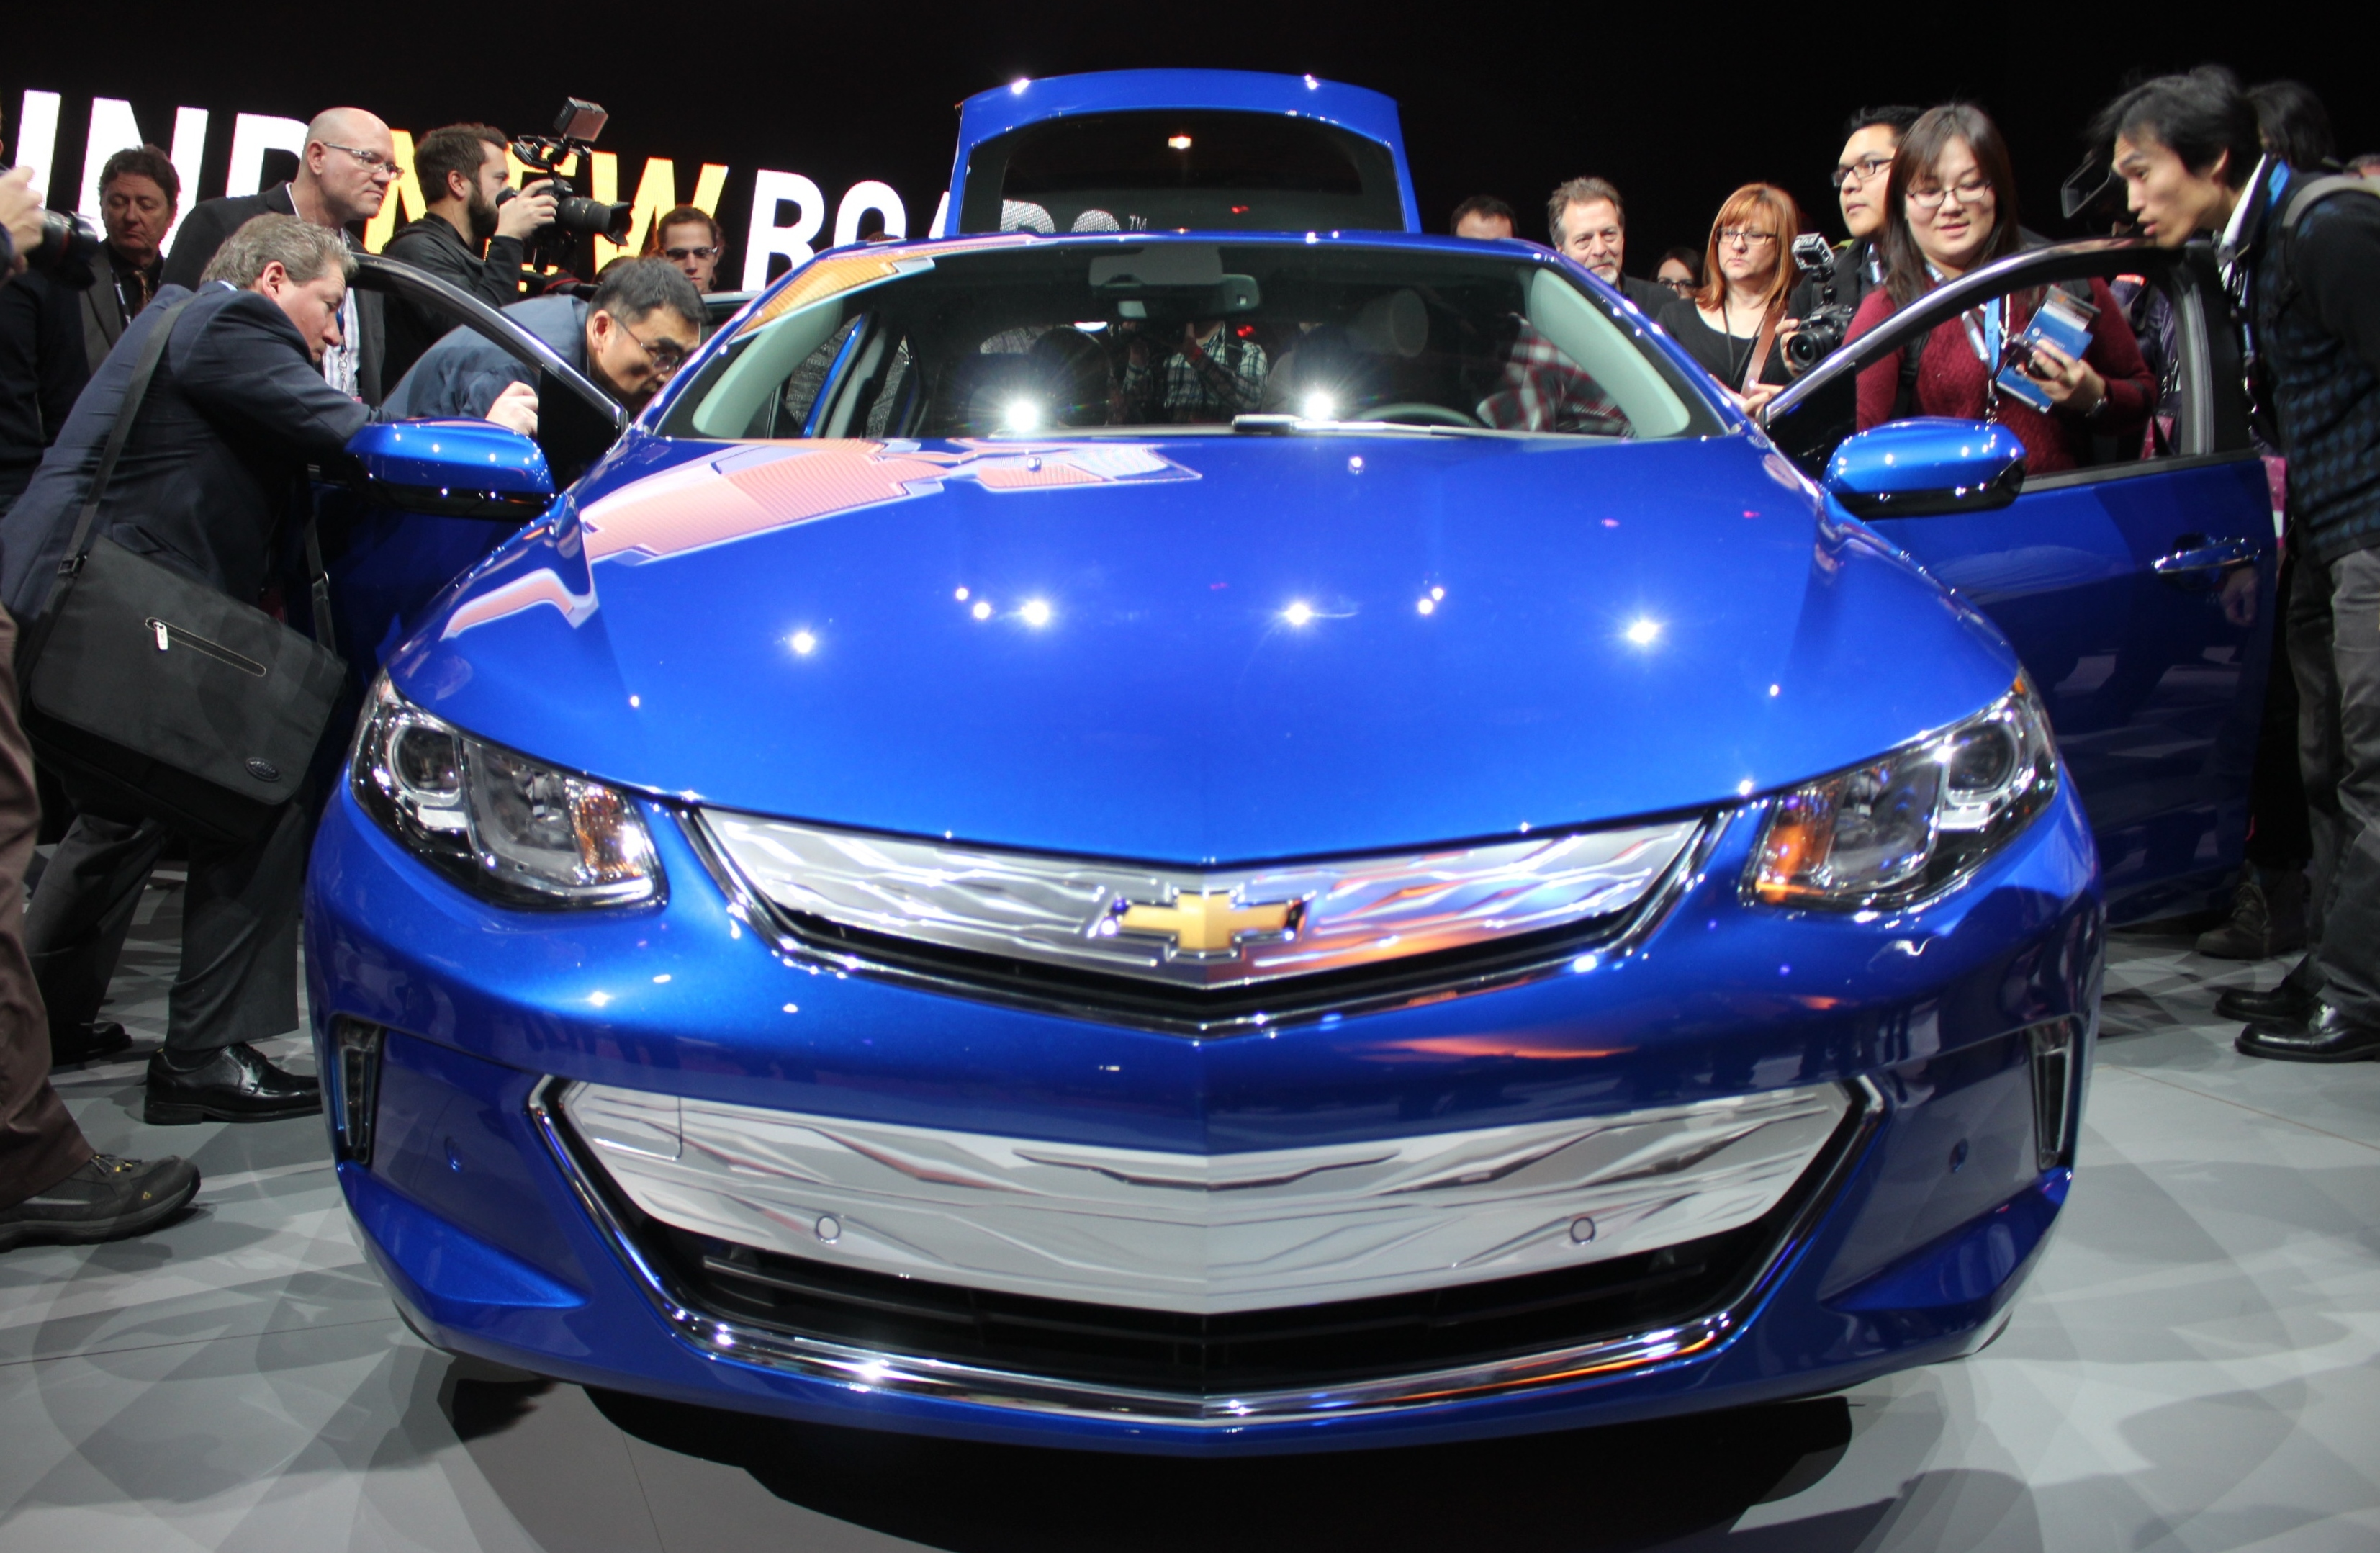 One of the many new model cars on display at this years North American International Auto Show in Detroit, January 12, 2015. (photo by Mike Vlasveld)